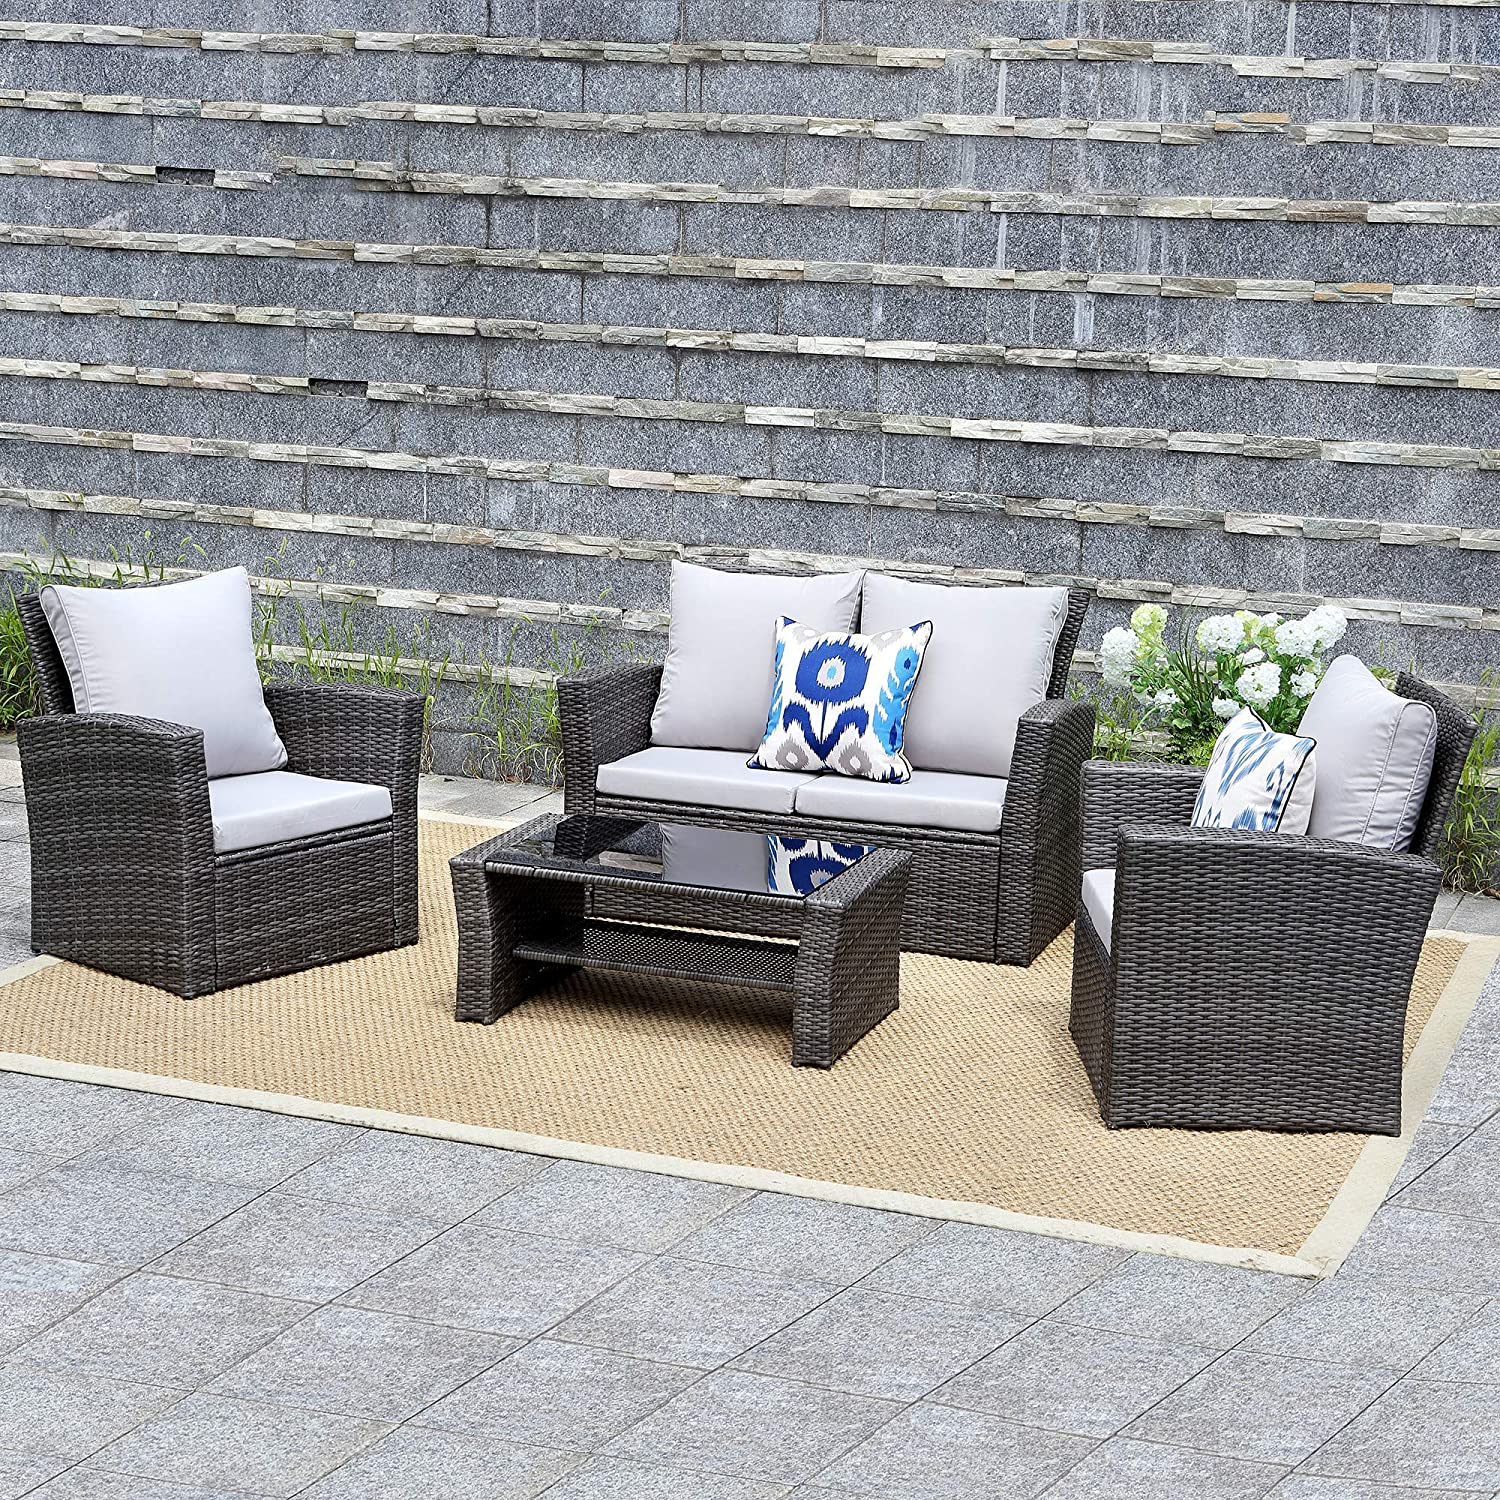 Amazon com wisteria lane outdoor patio furniture set 5 piece sectional sofa couch wicker rattan conversation set chair table seat gray garden